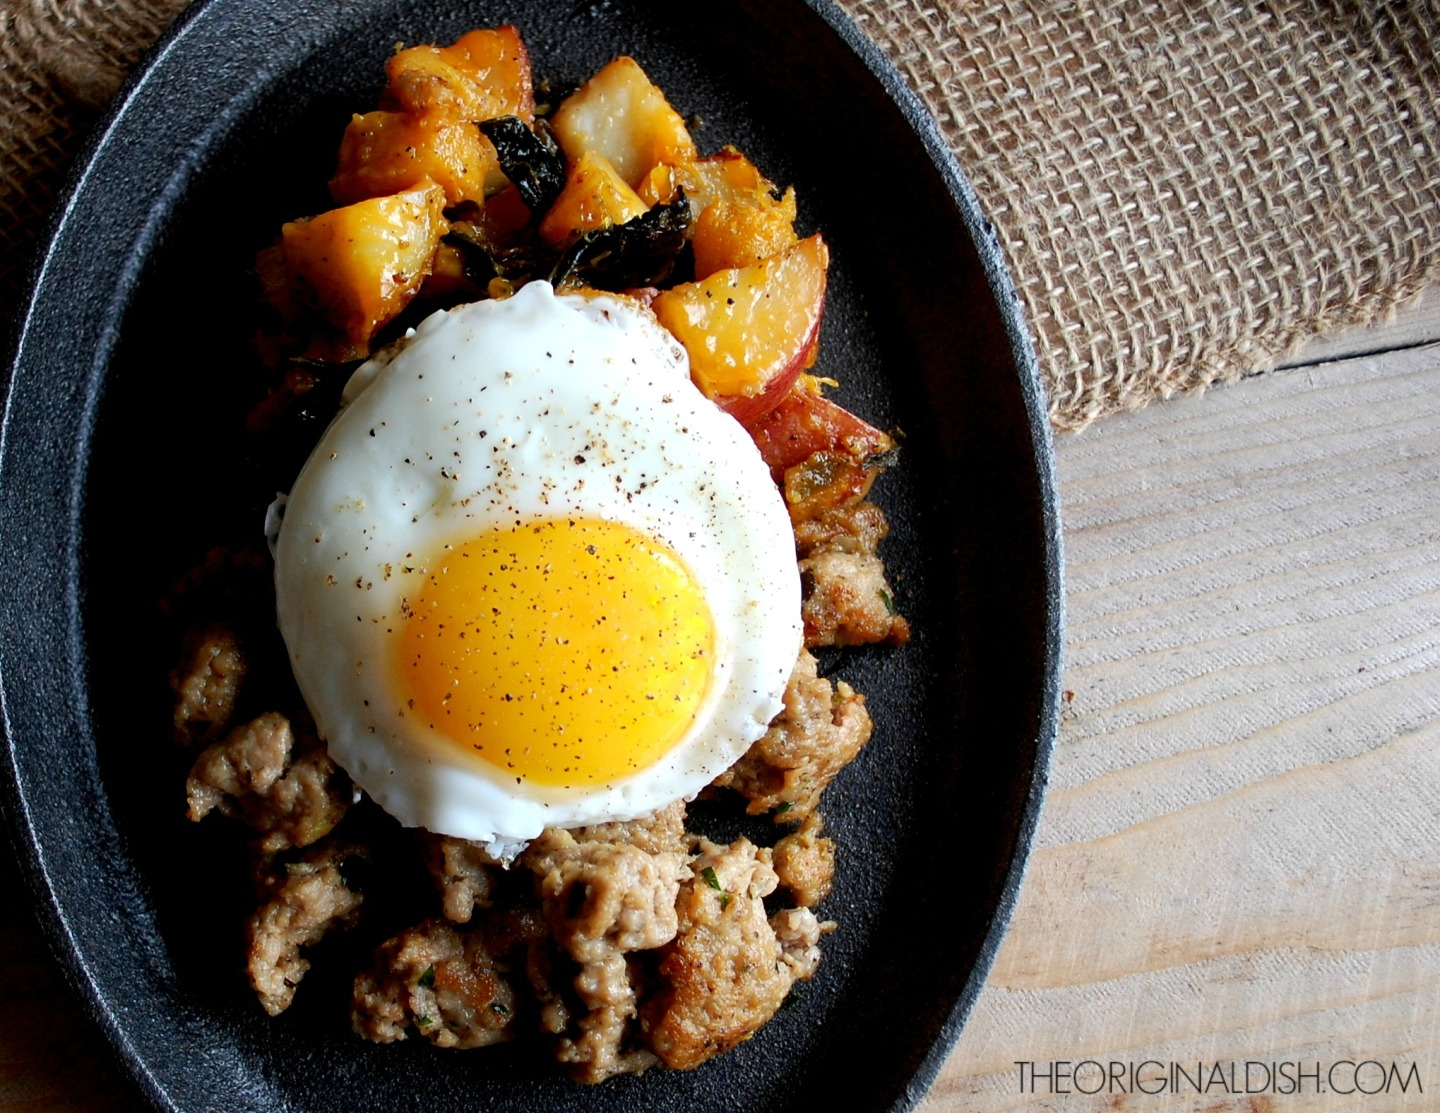 Autumn Hash with Homemade Turkey Sausage & Fried Eggs